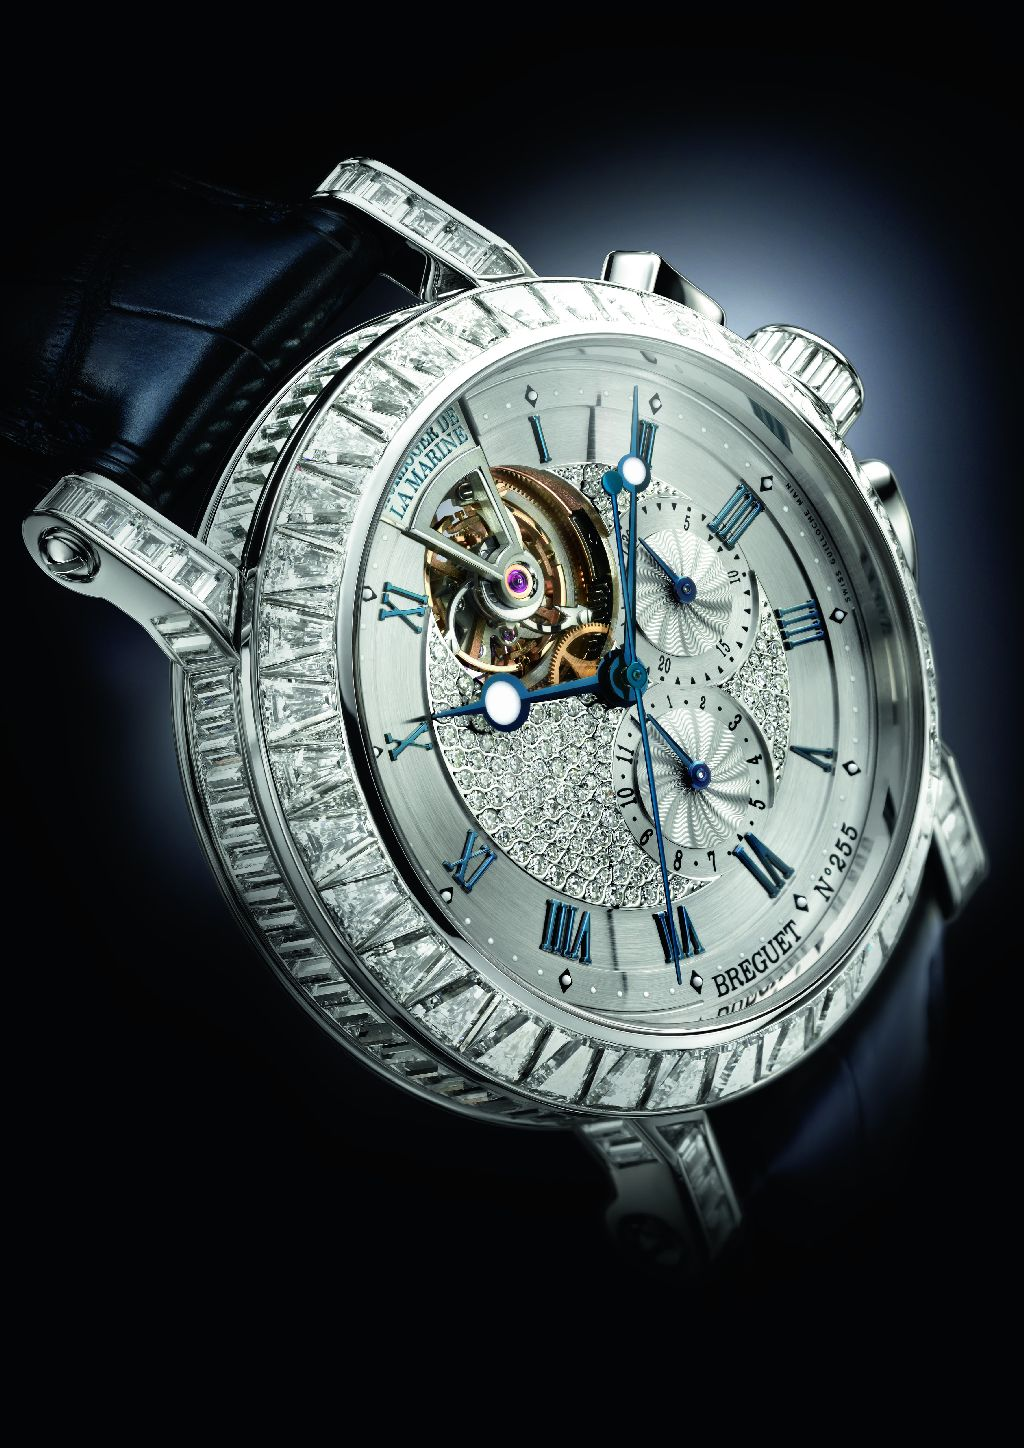 Breguet Marine Tourbillon Chronograph Watch